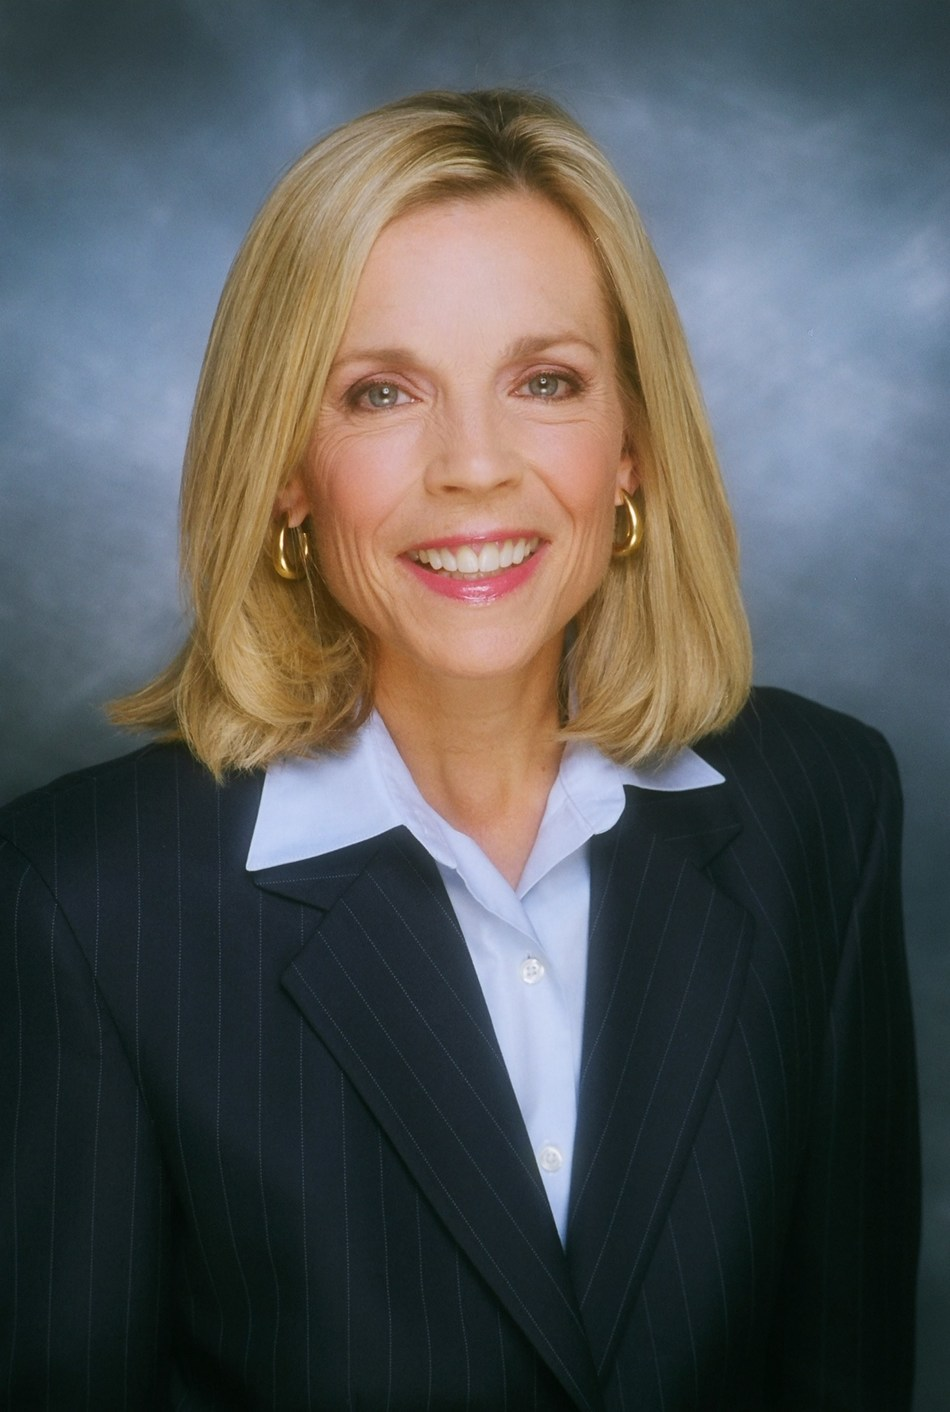 Patty Nooney, EVP/Operations, East for Madison Marquette